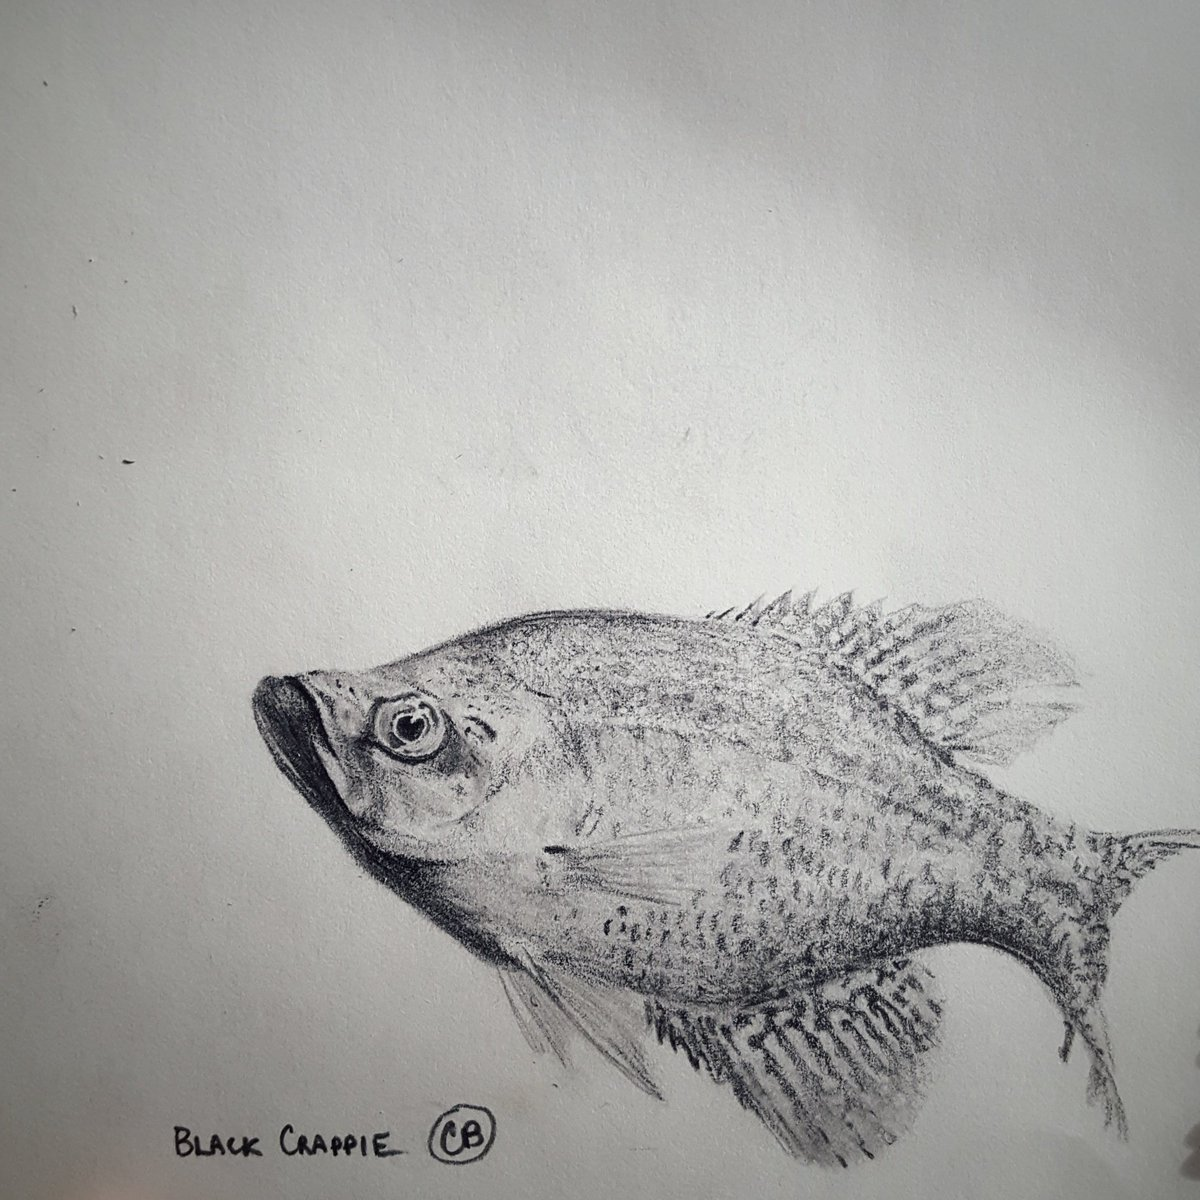 Here&#39;s hoping your week wasn&#39;t &#39;crappie.&#39; This #SundayFishSketch is one of my favorite panfish. Anyone catching any of these beauties lately? (graphite/sketchpad). #SciArt #fish<br>http://pic.twitter.com/iZGgJcxp2C